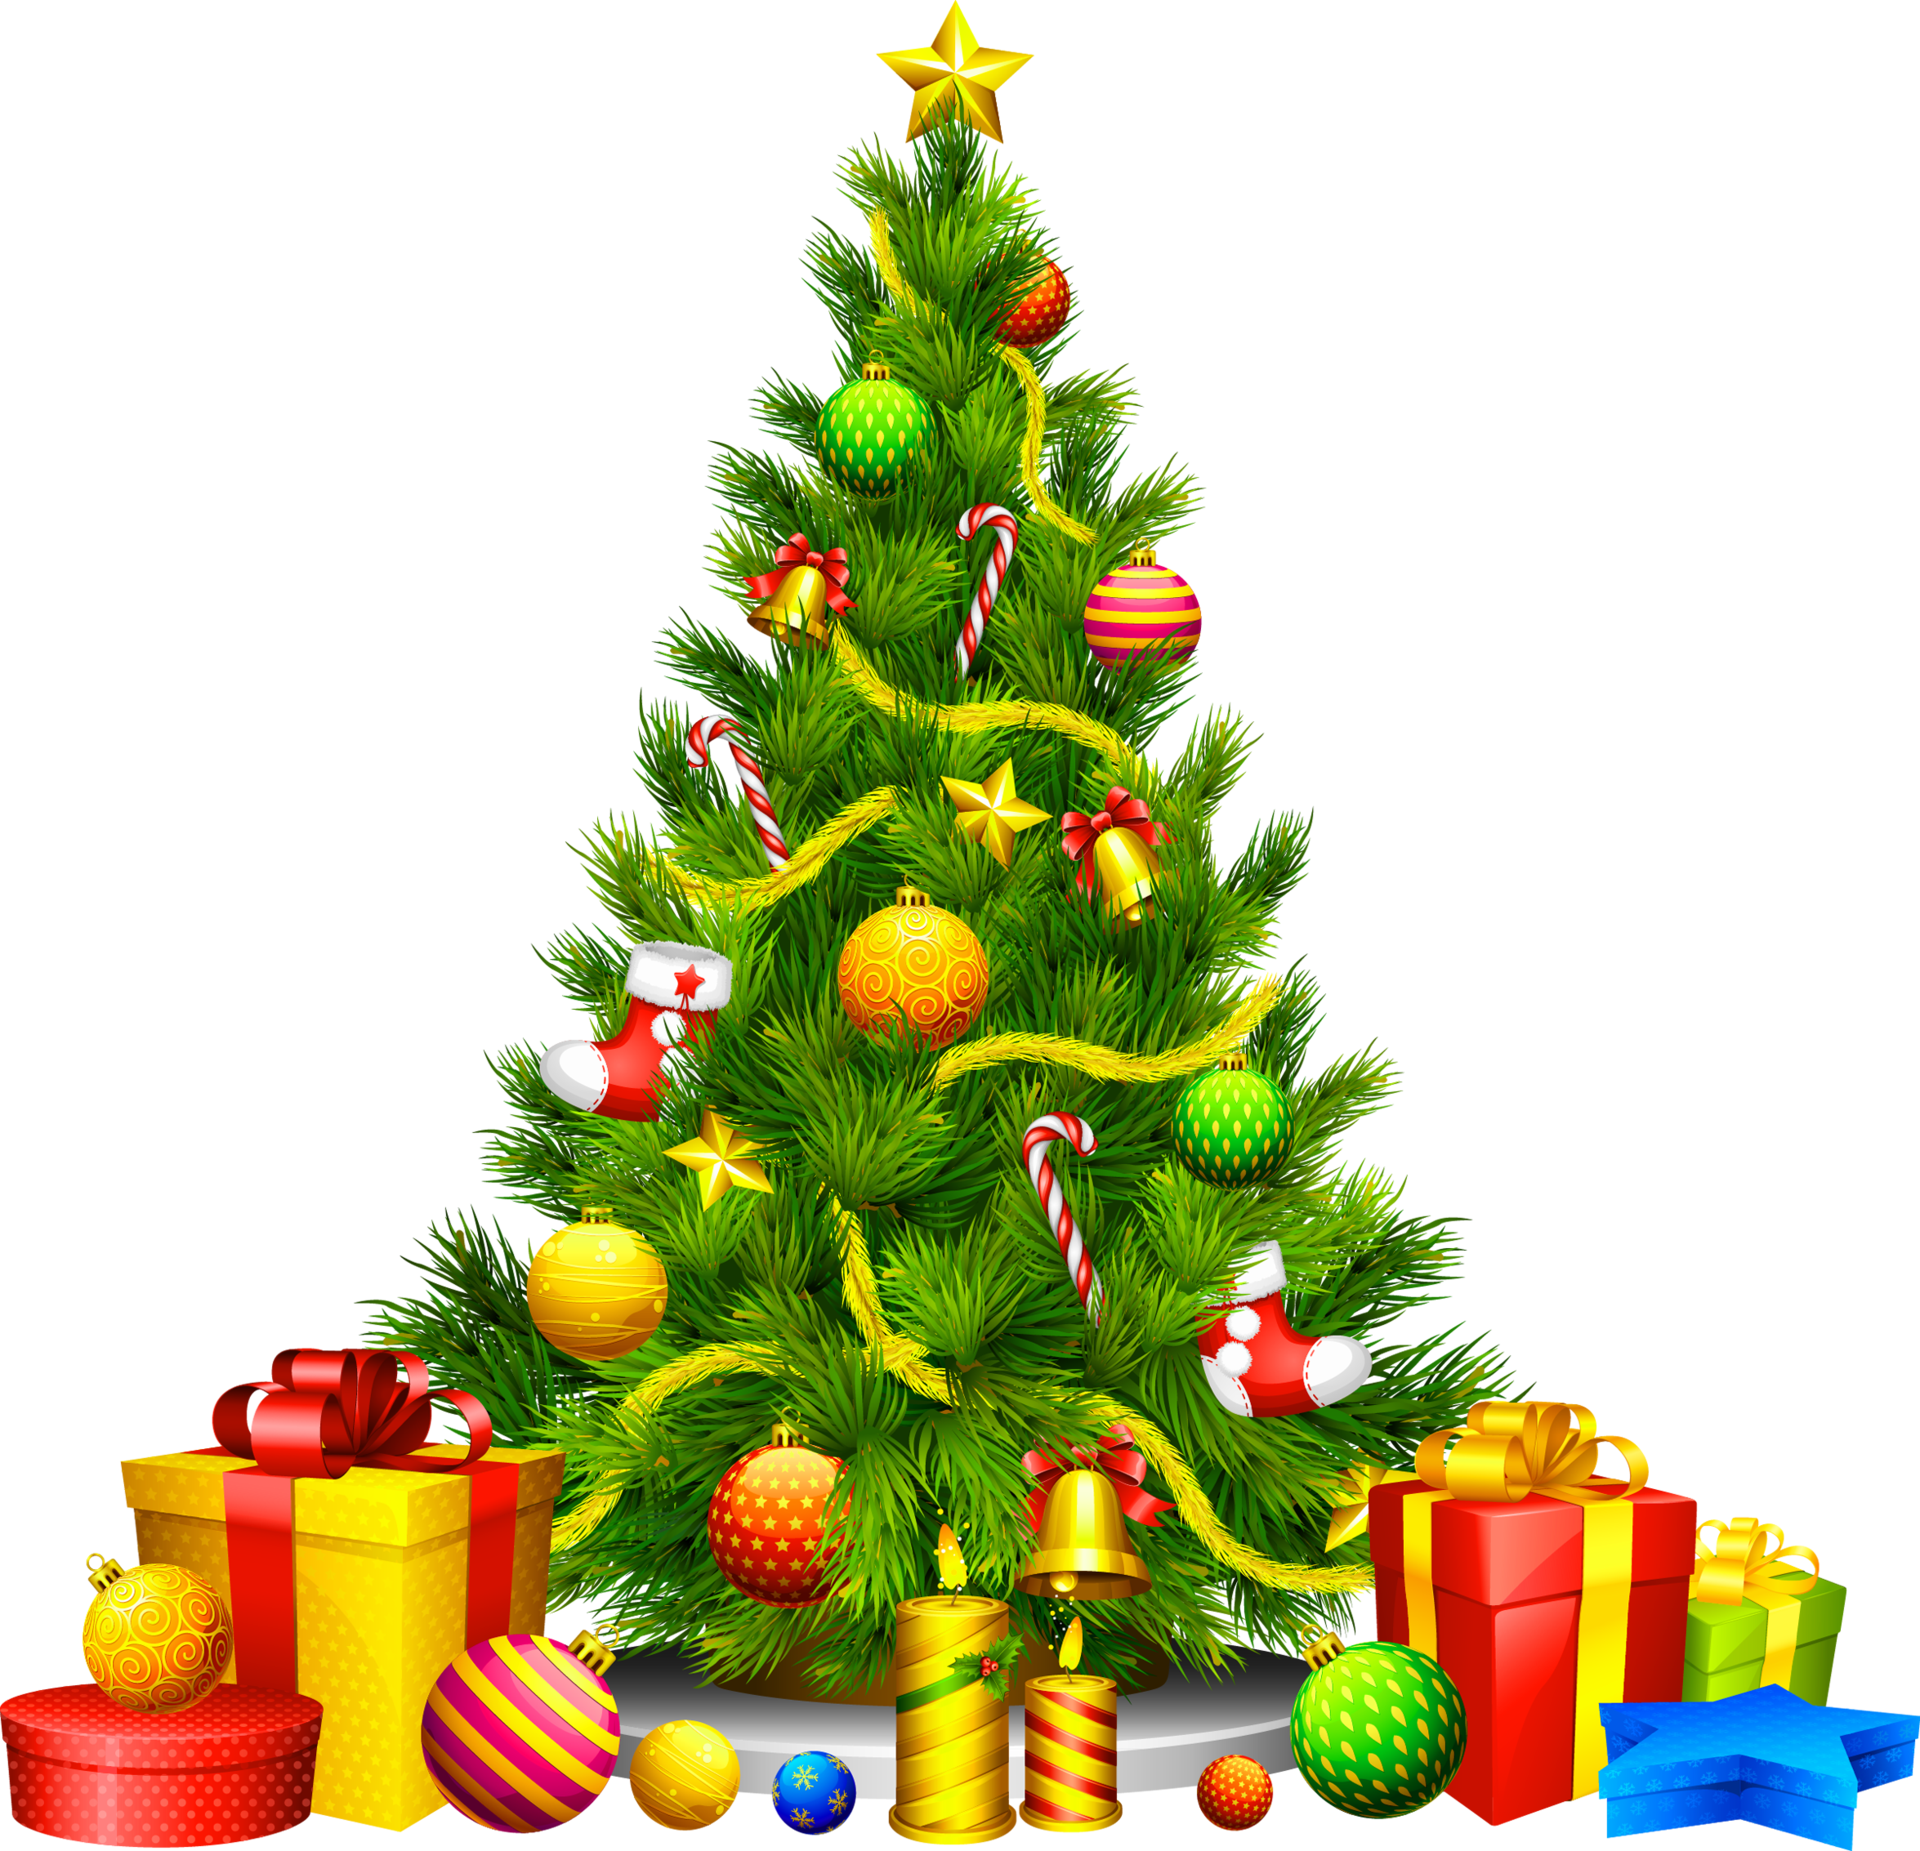 Clip Art of Christmas Tree with gifts